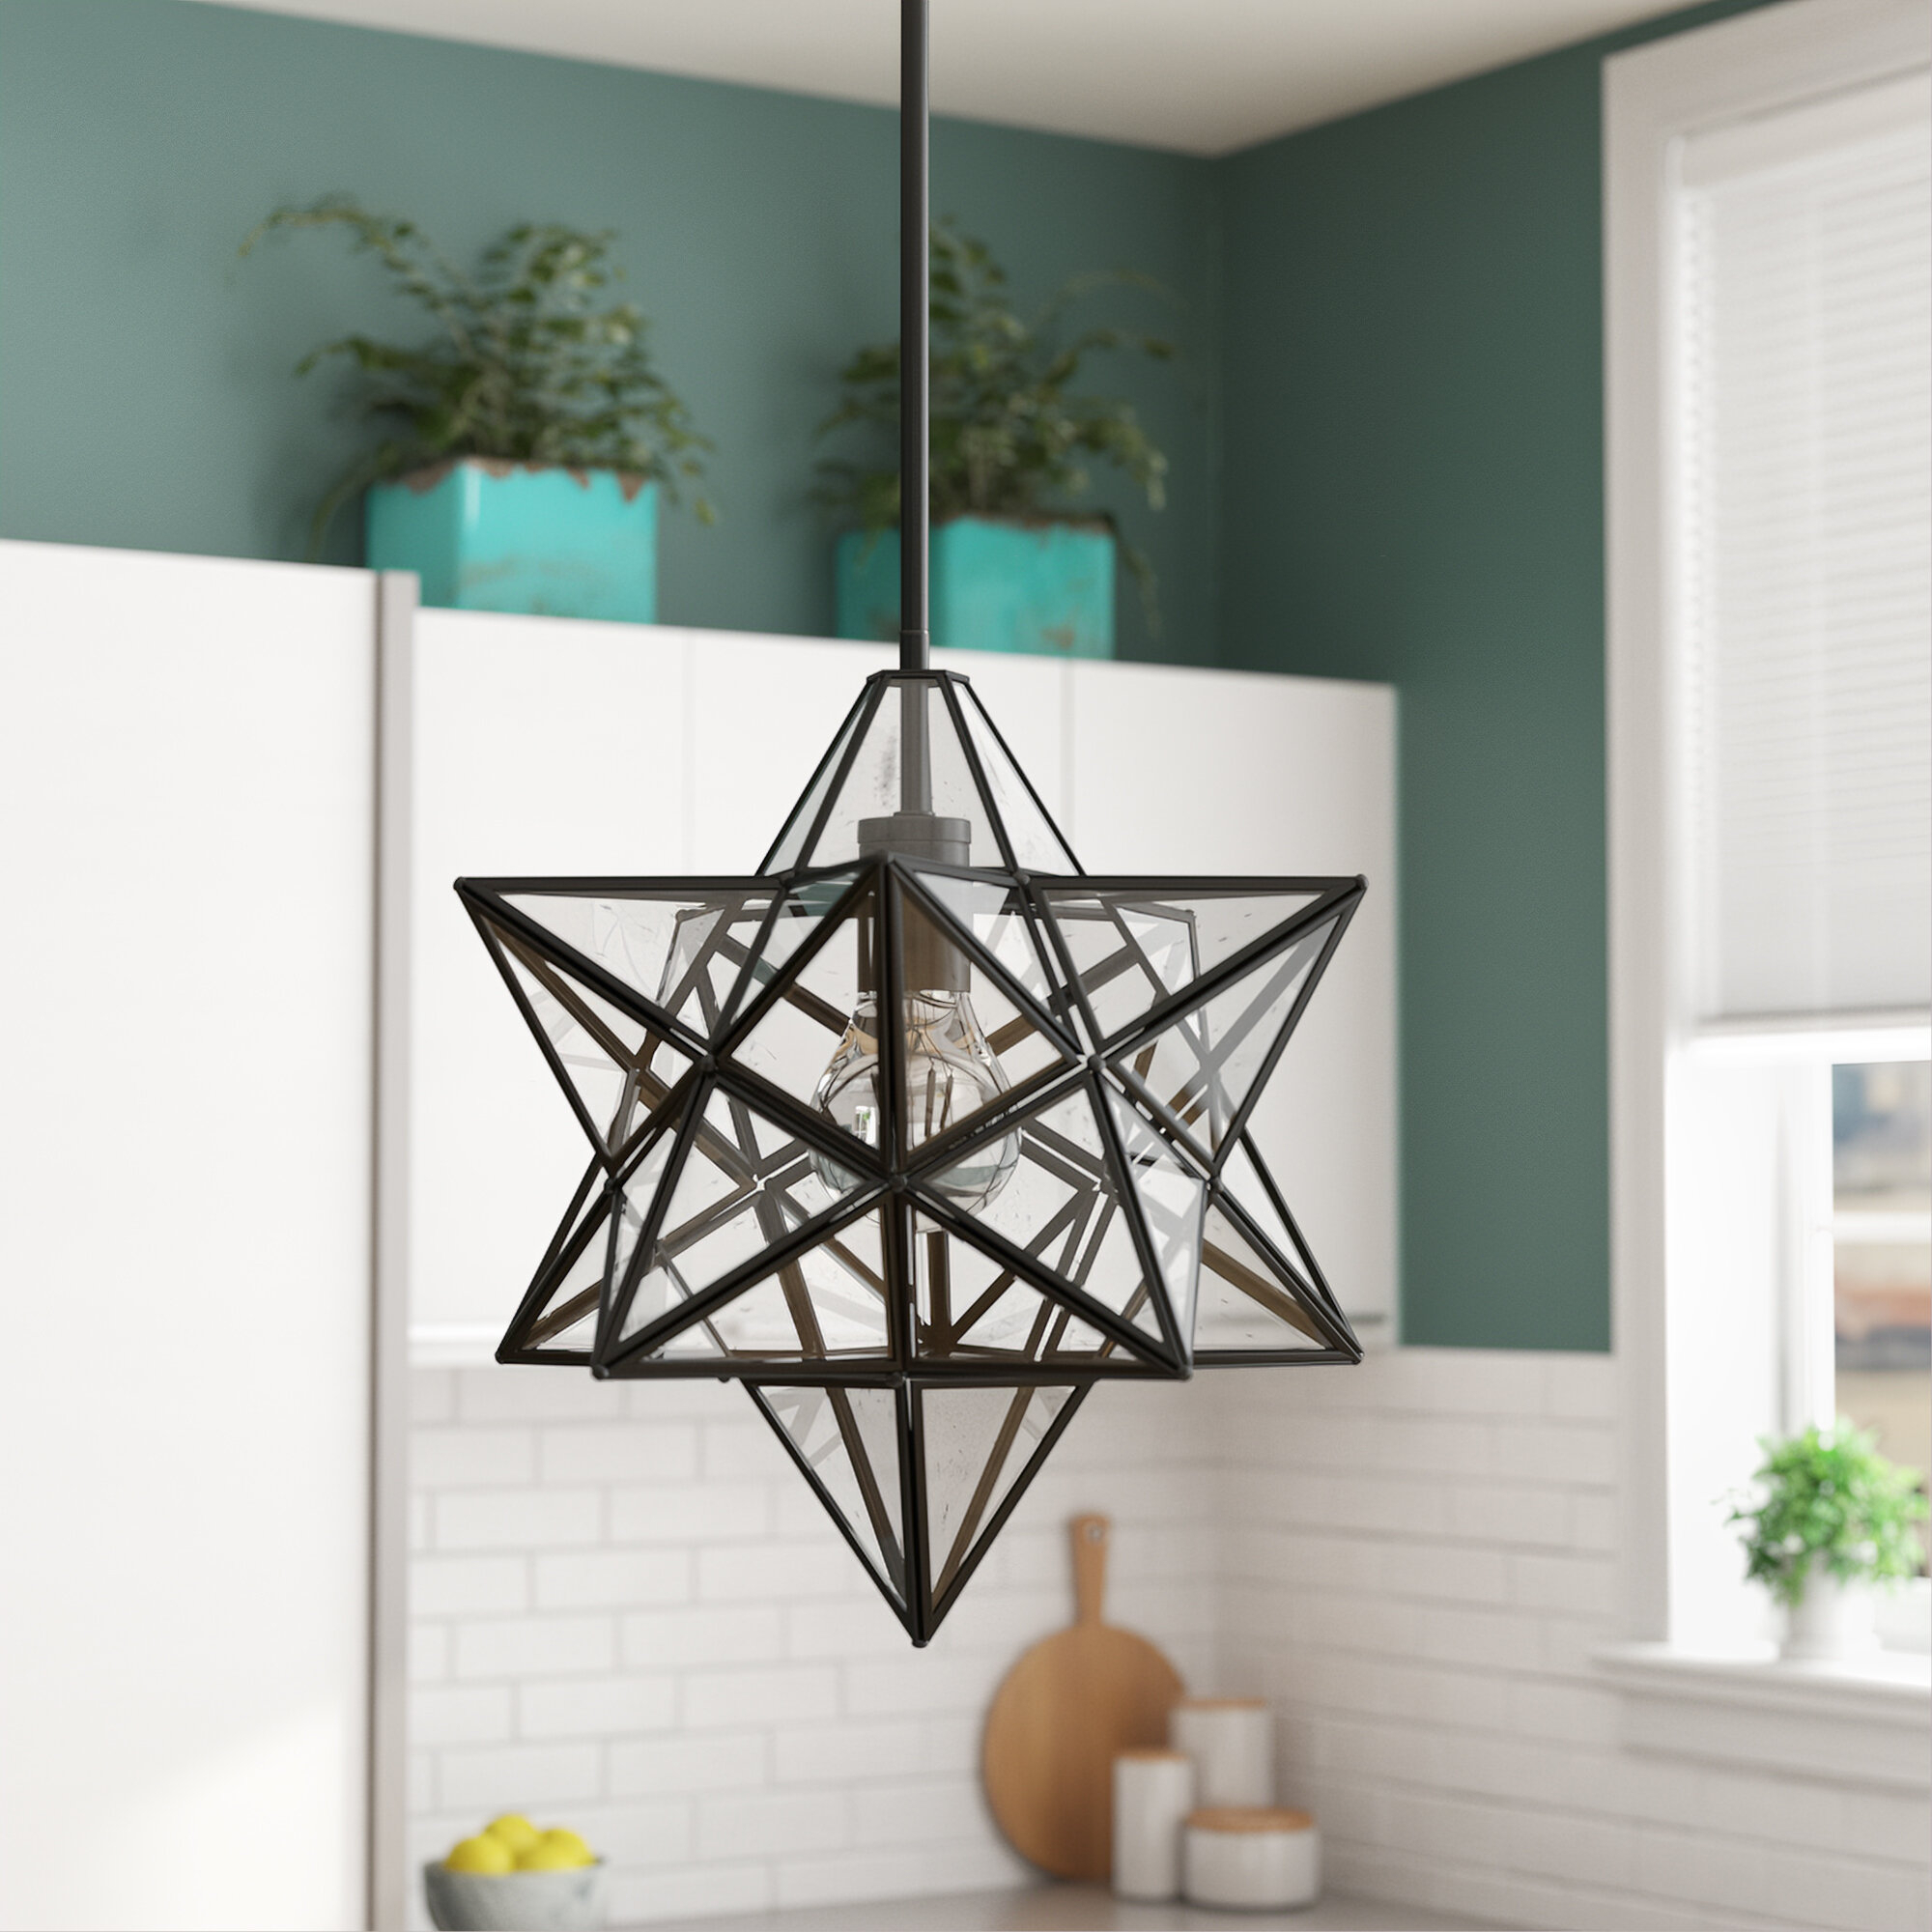 Berwick 1-Light Single Star Pendant pertaining to 1-Light Single Star Pendants (Image 6 of 30)